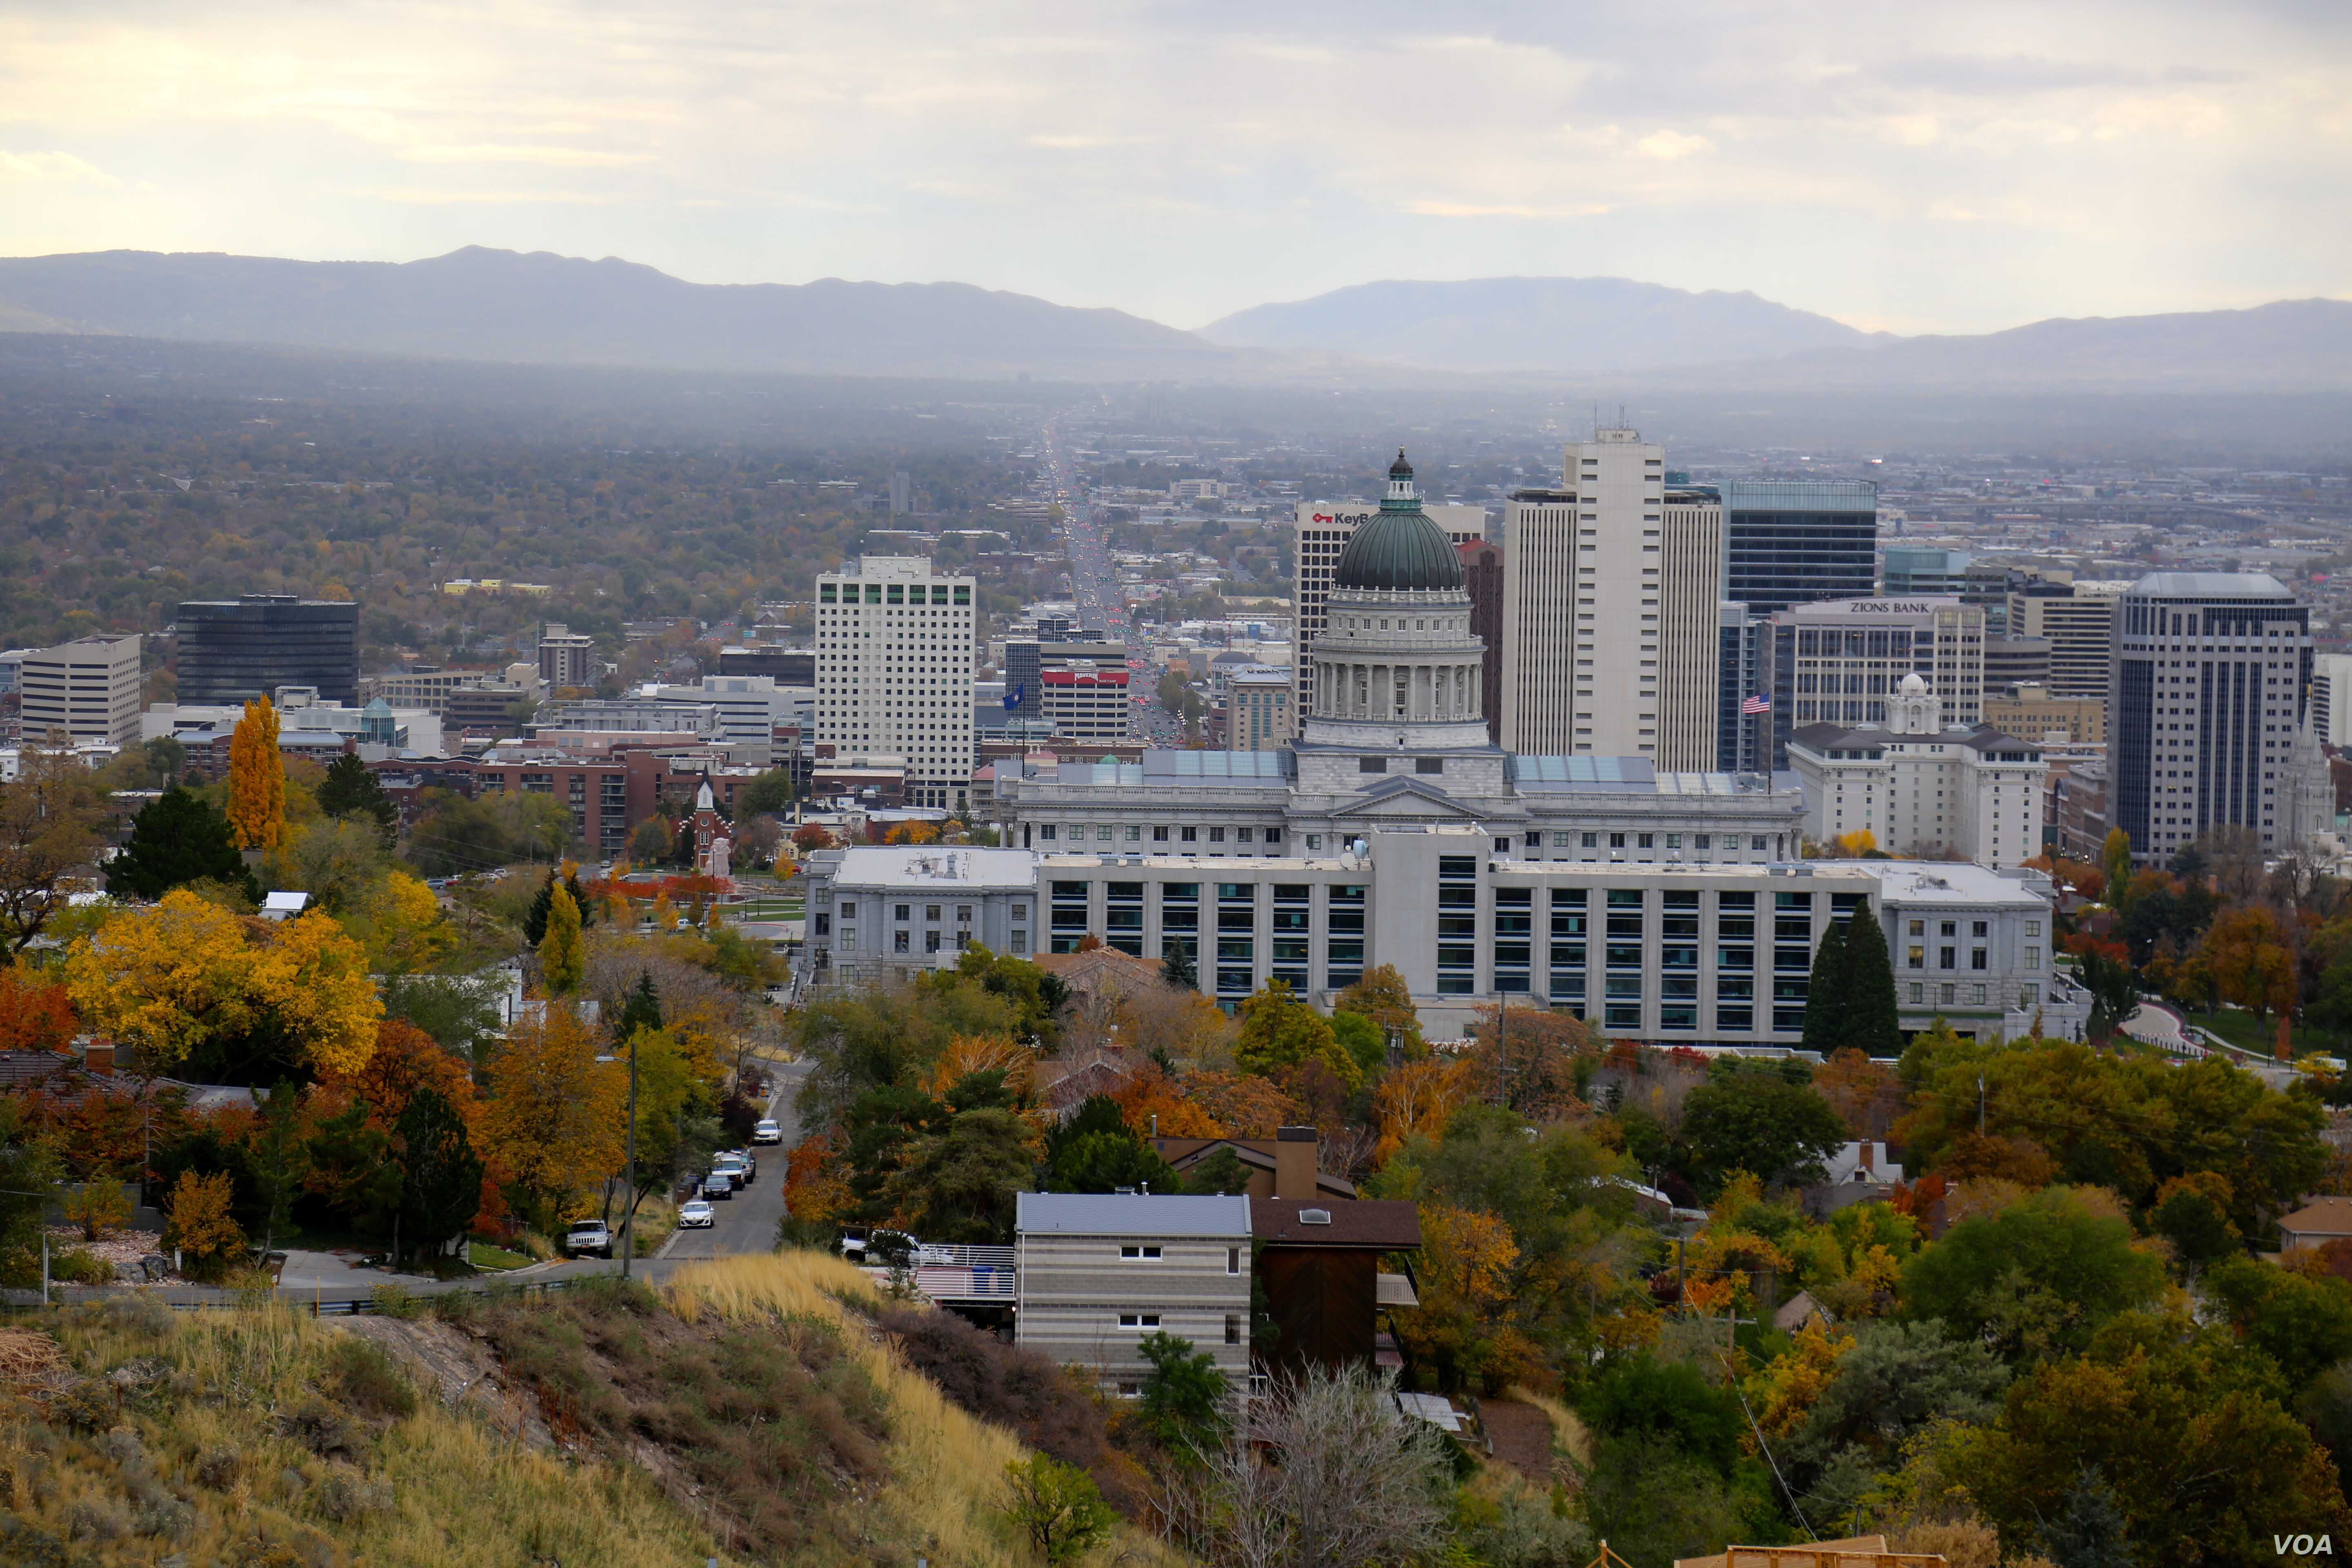 Utah's state capitol overlooks the rest of Salt Lake City. About 40 percent of the city's population are members of the Church of Jesus Christ of Latter-day Saints. The greater Salt Lake City metro area has about 1.2 million people. Oct 28, 2016. (...